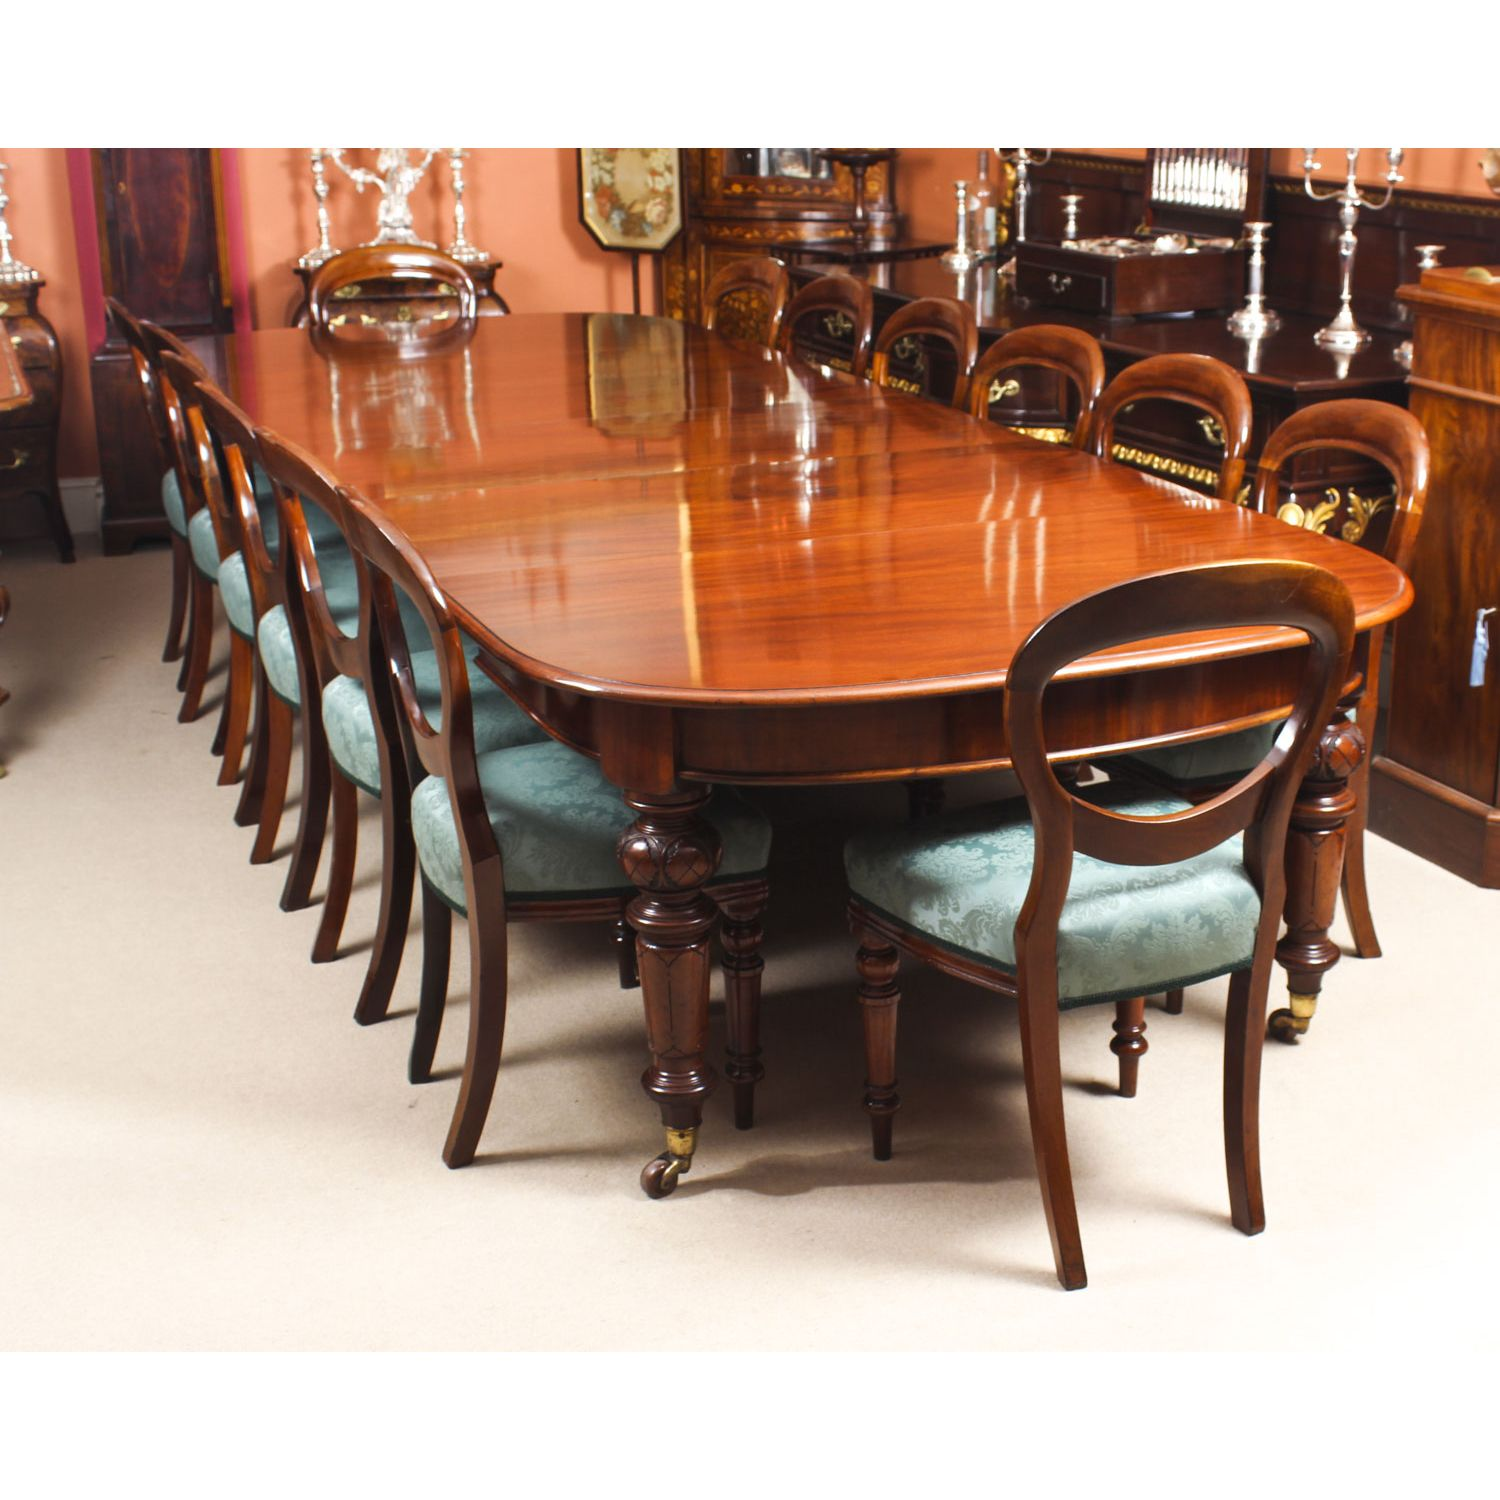 Outstanding Antique 12 Ft Victorian D End Mahogany Dining Table 14 Andrewgaddart Wooden Chair Designs For Living Room Andrewgaddartcom